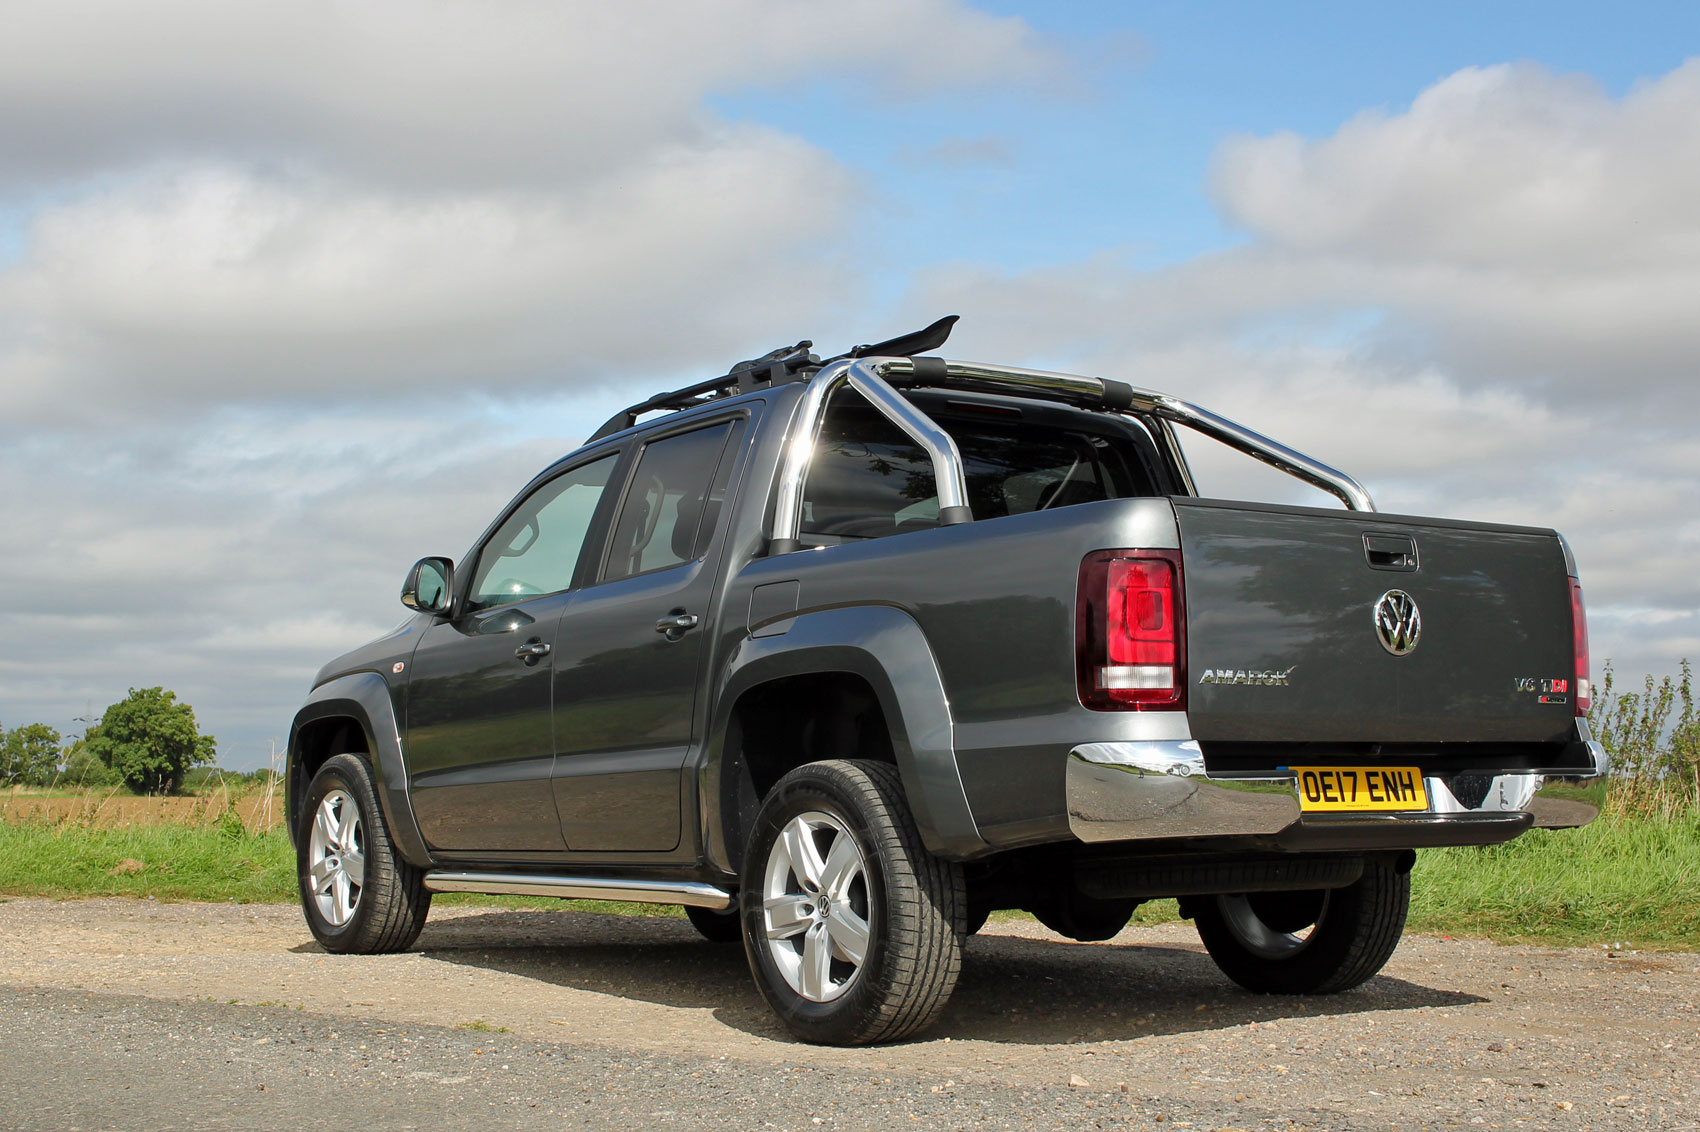 volkswagen amarok 3 0 v6 tdi 220ps a33 d cab pick up highline bmt 4m auto road test parkers. Black Bedroom Furniture Sets. Home Design Ideas